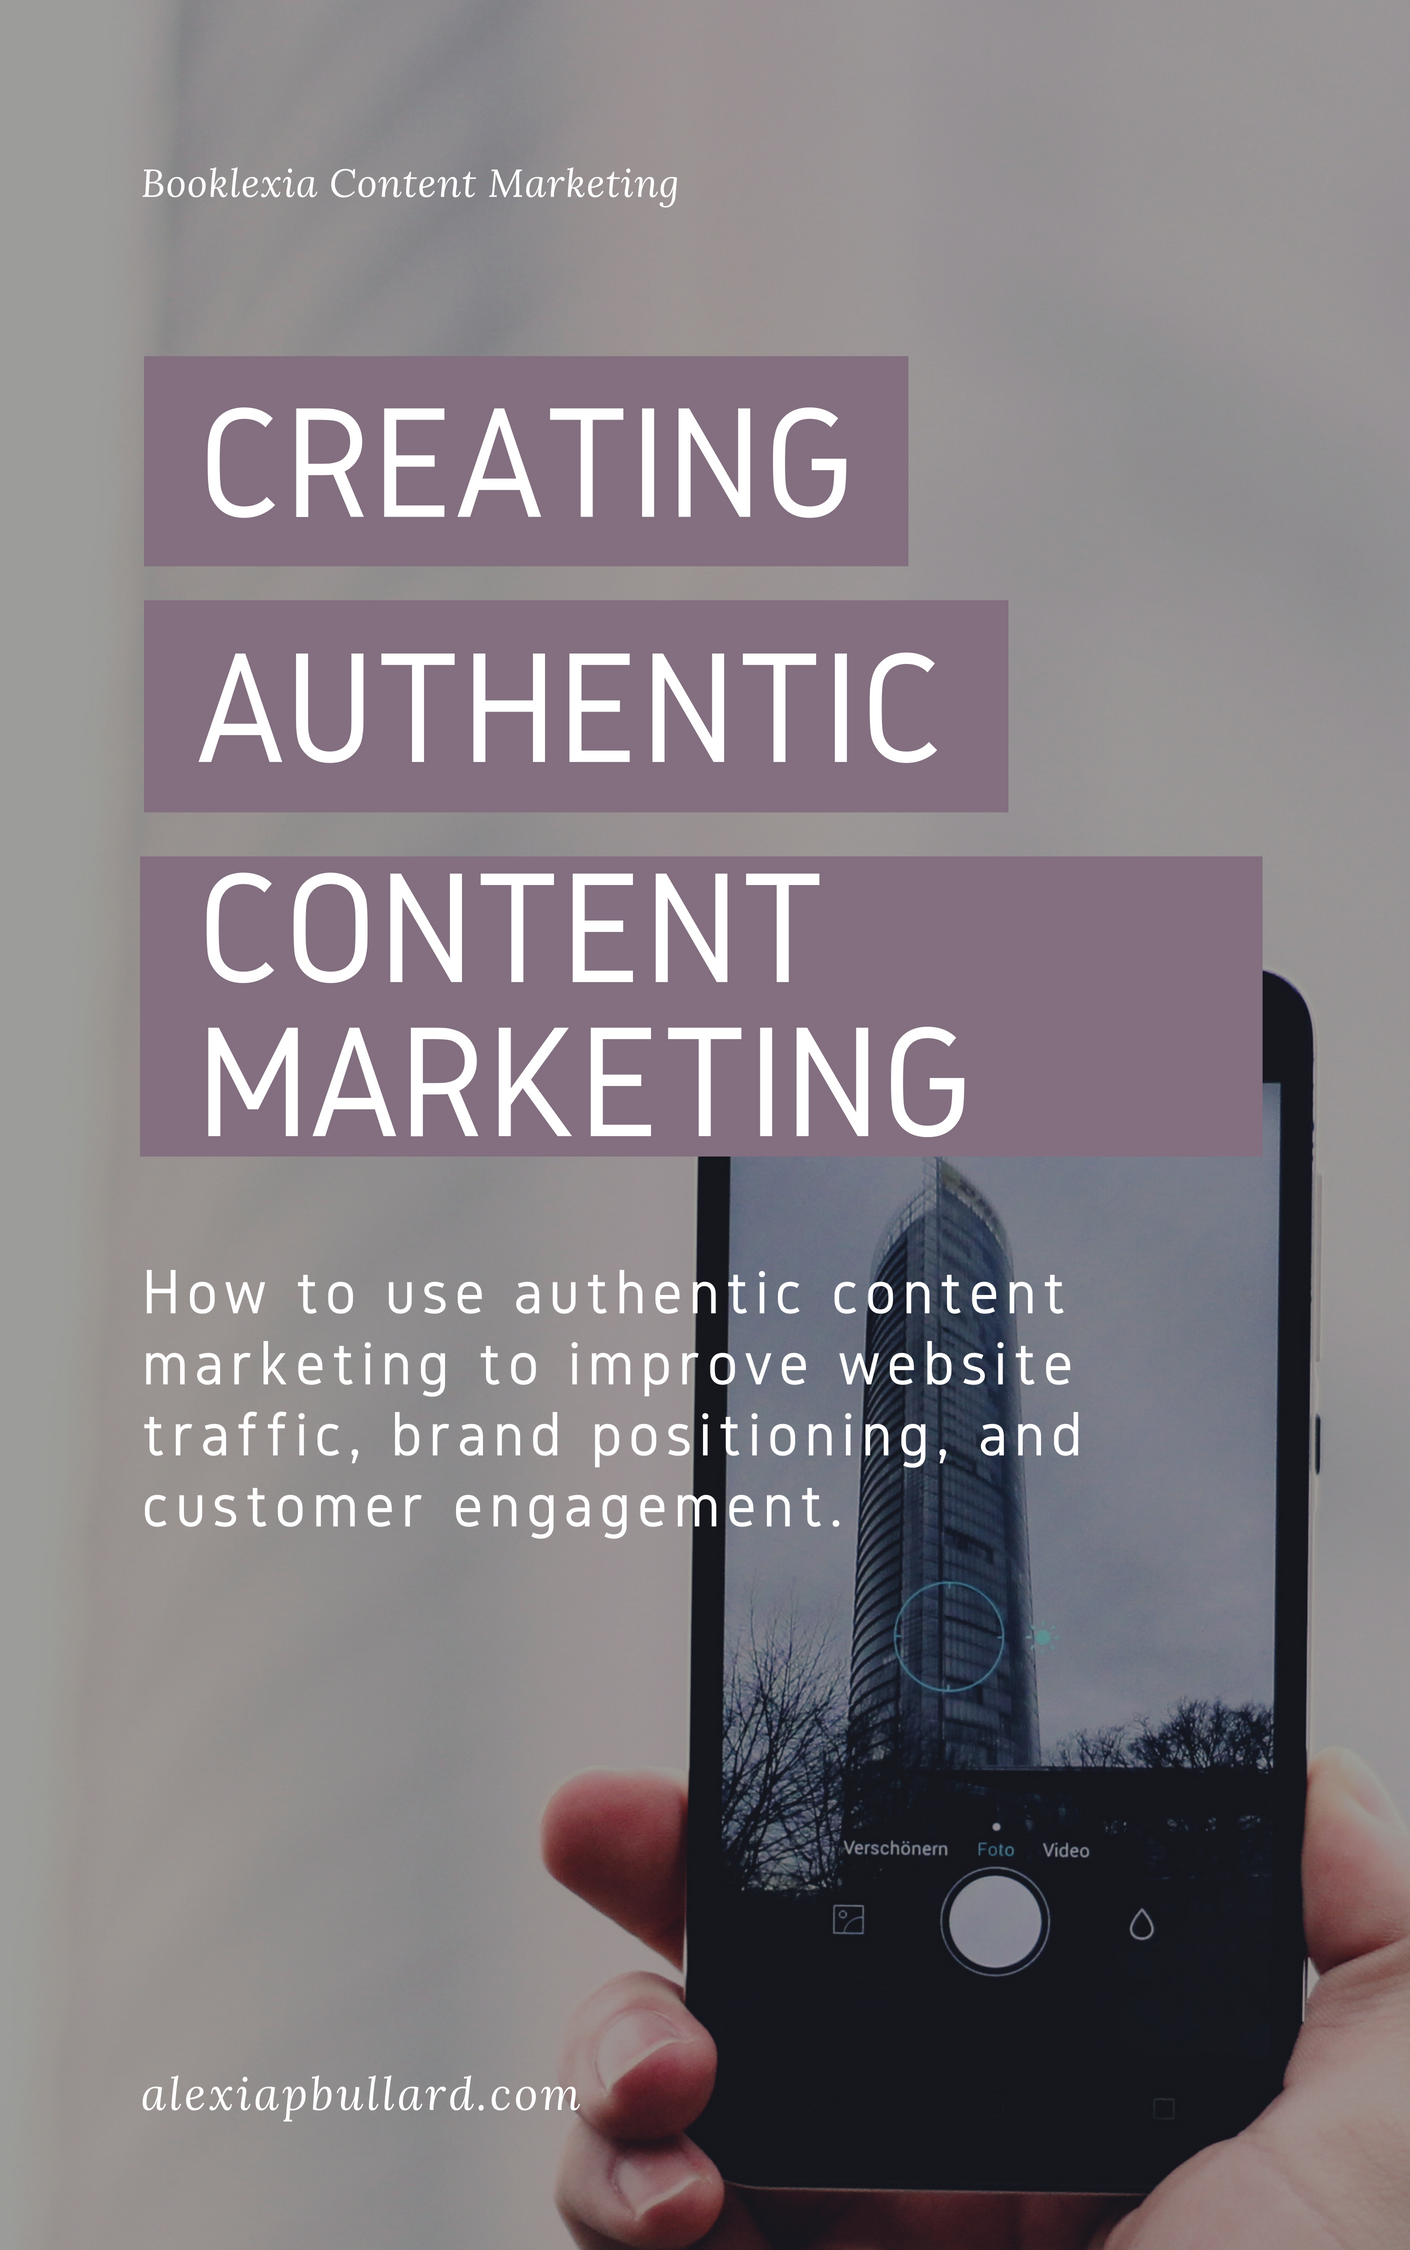 The Importance of Authentic Content Marketing